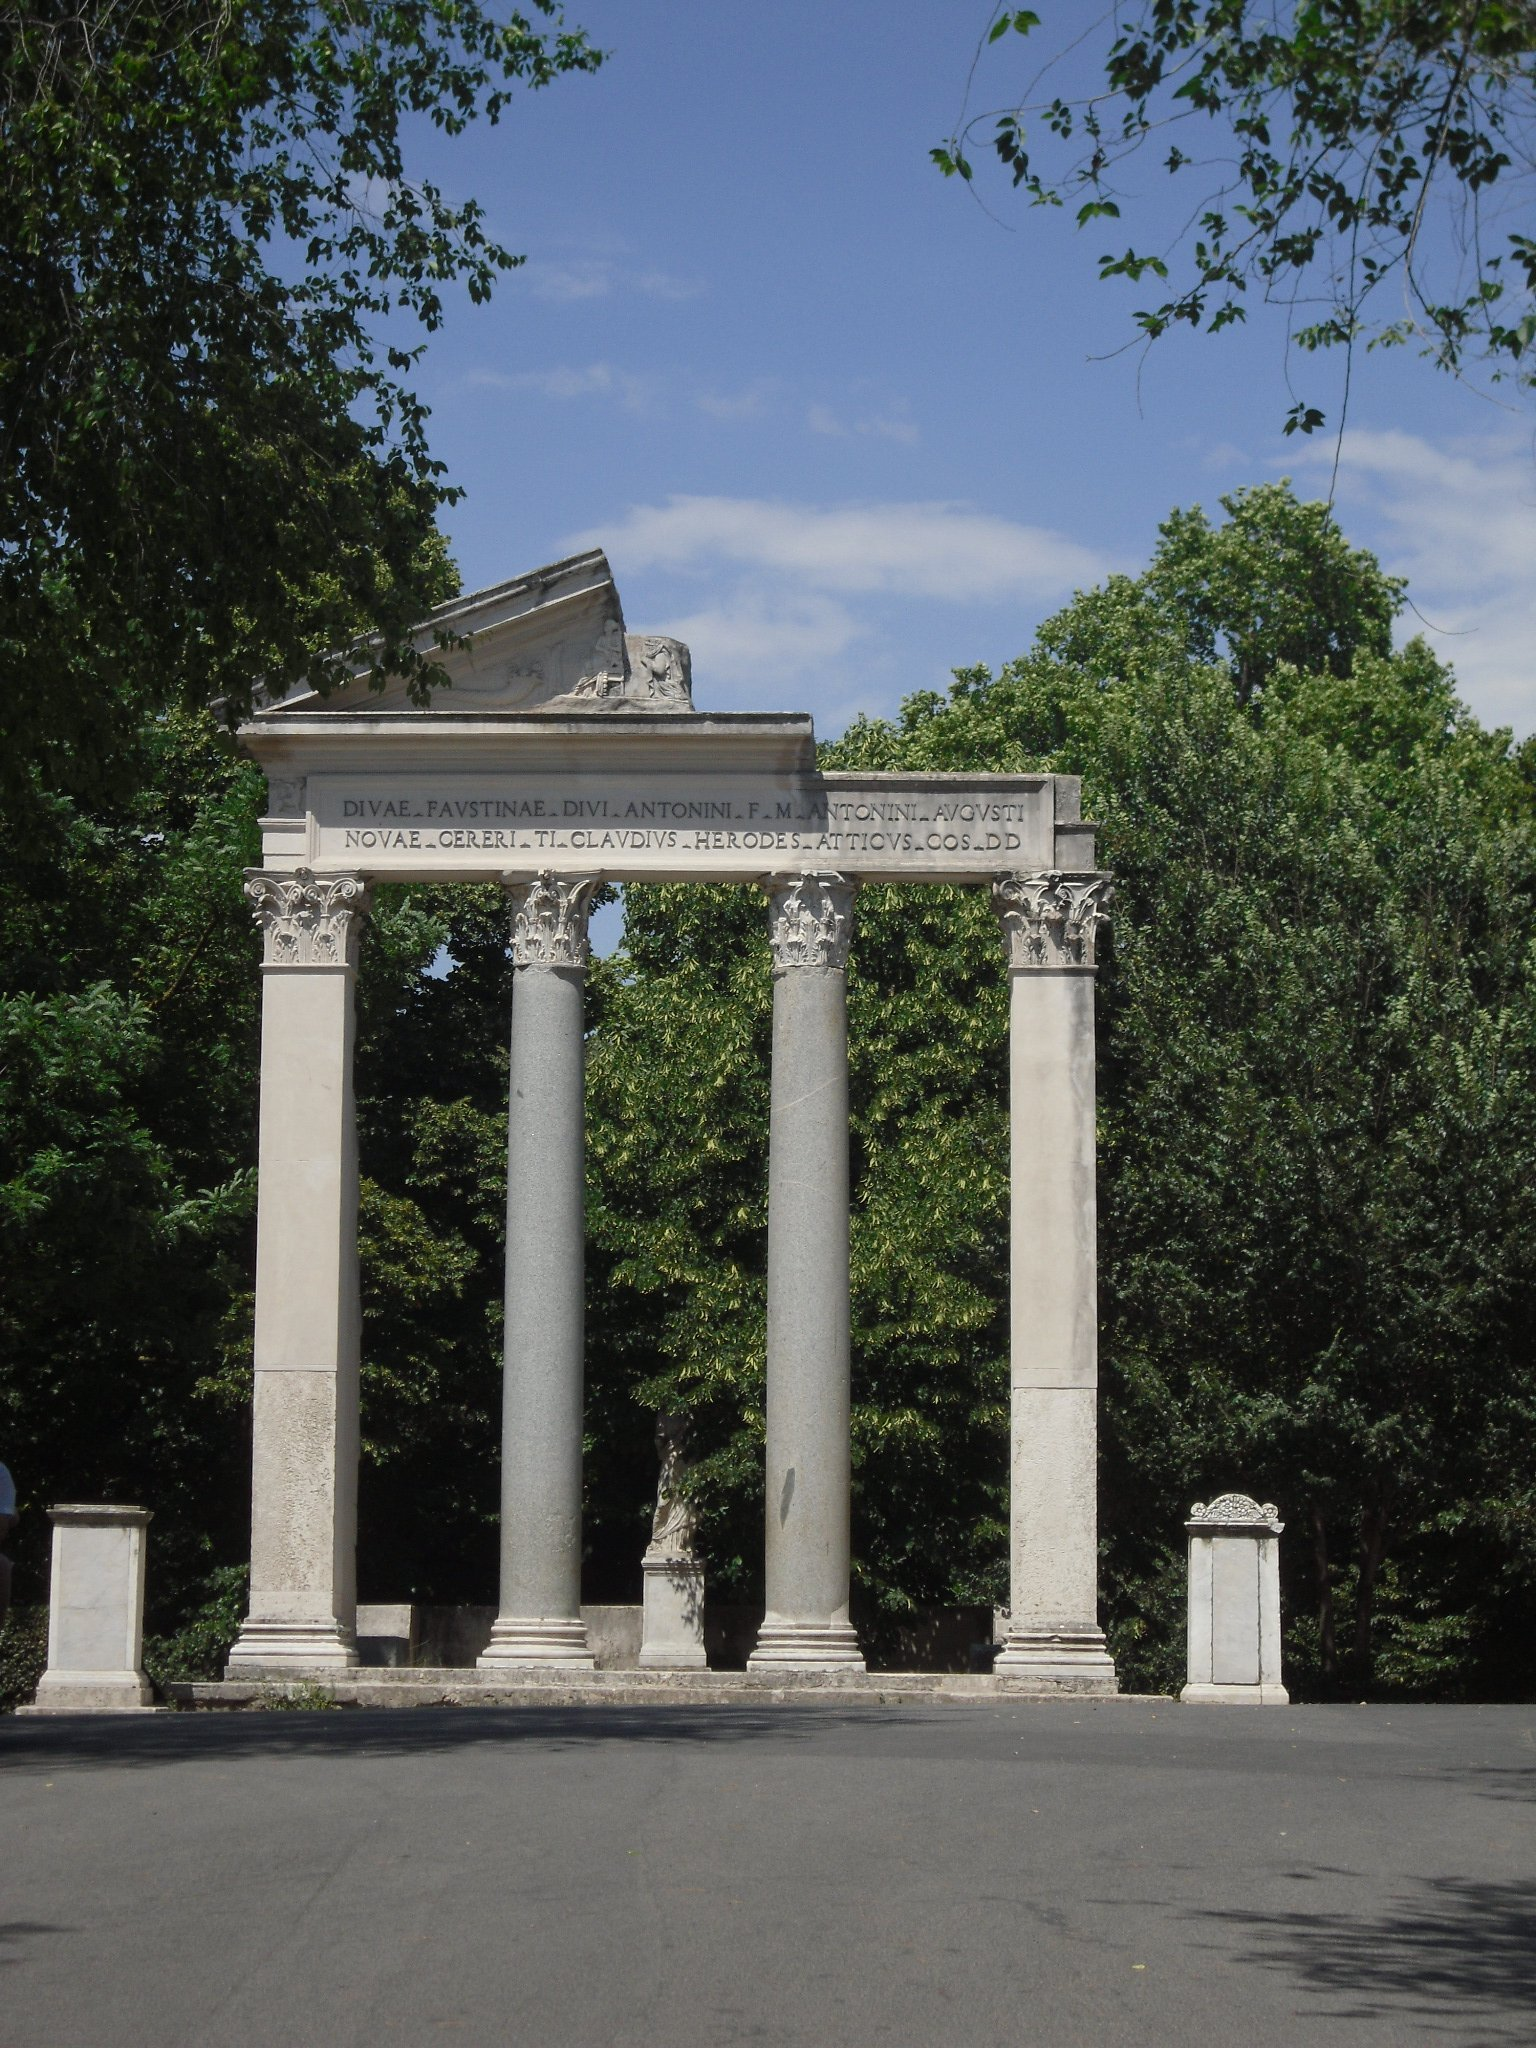 Villa Borghese: the relax in Rome